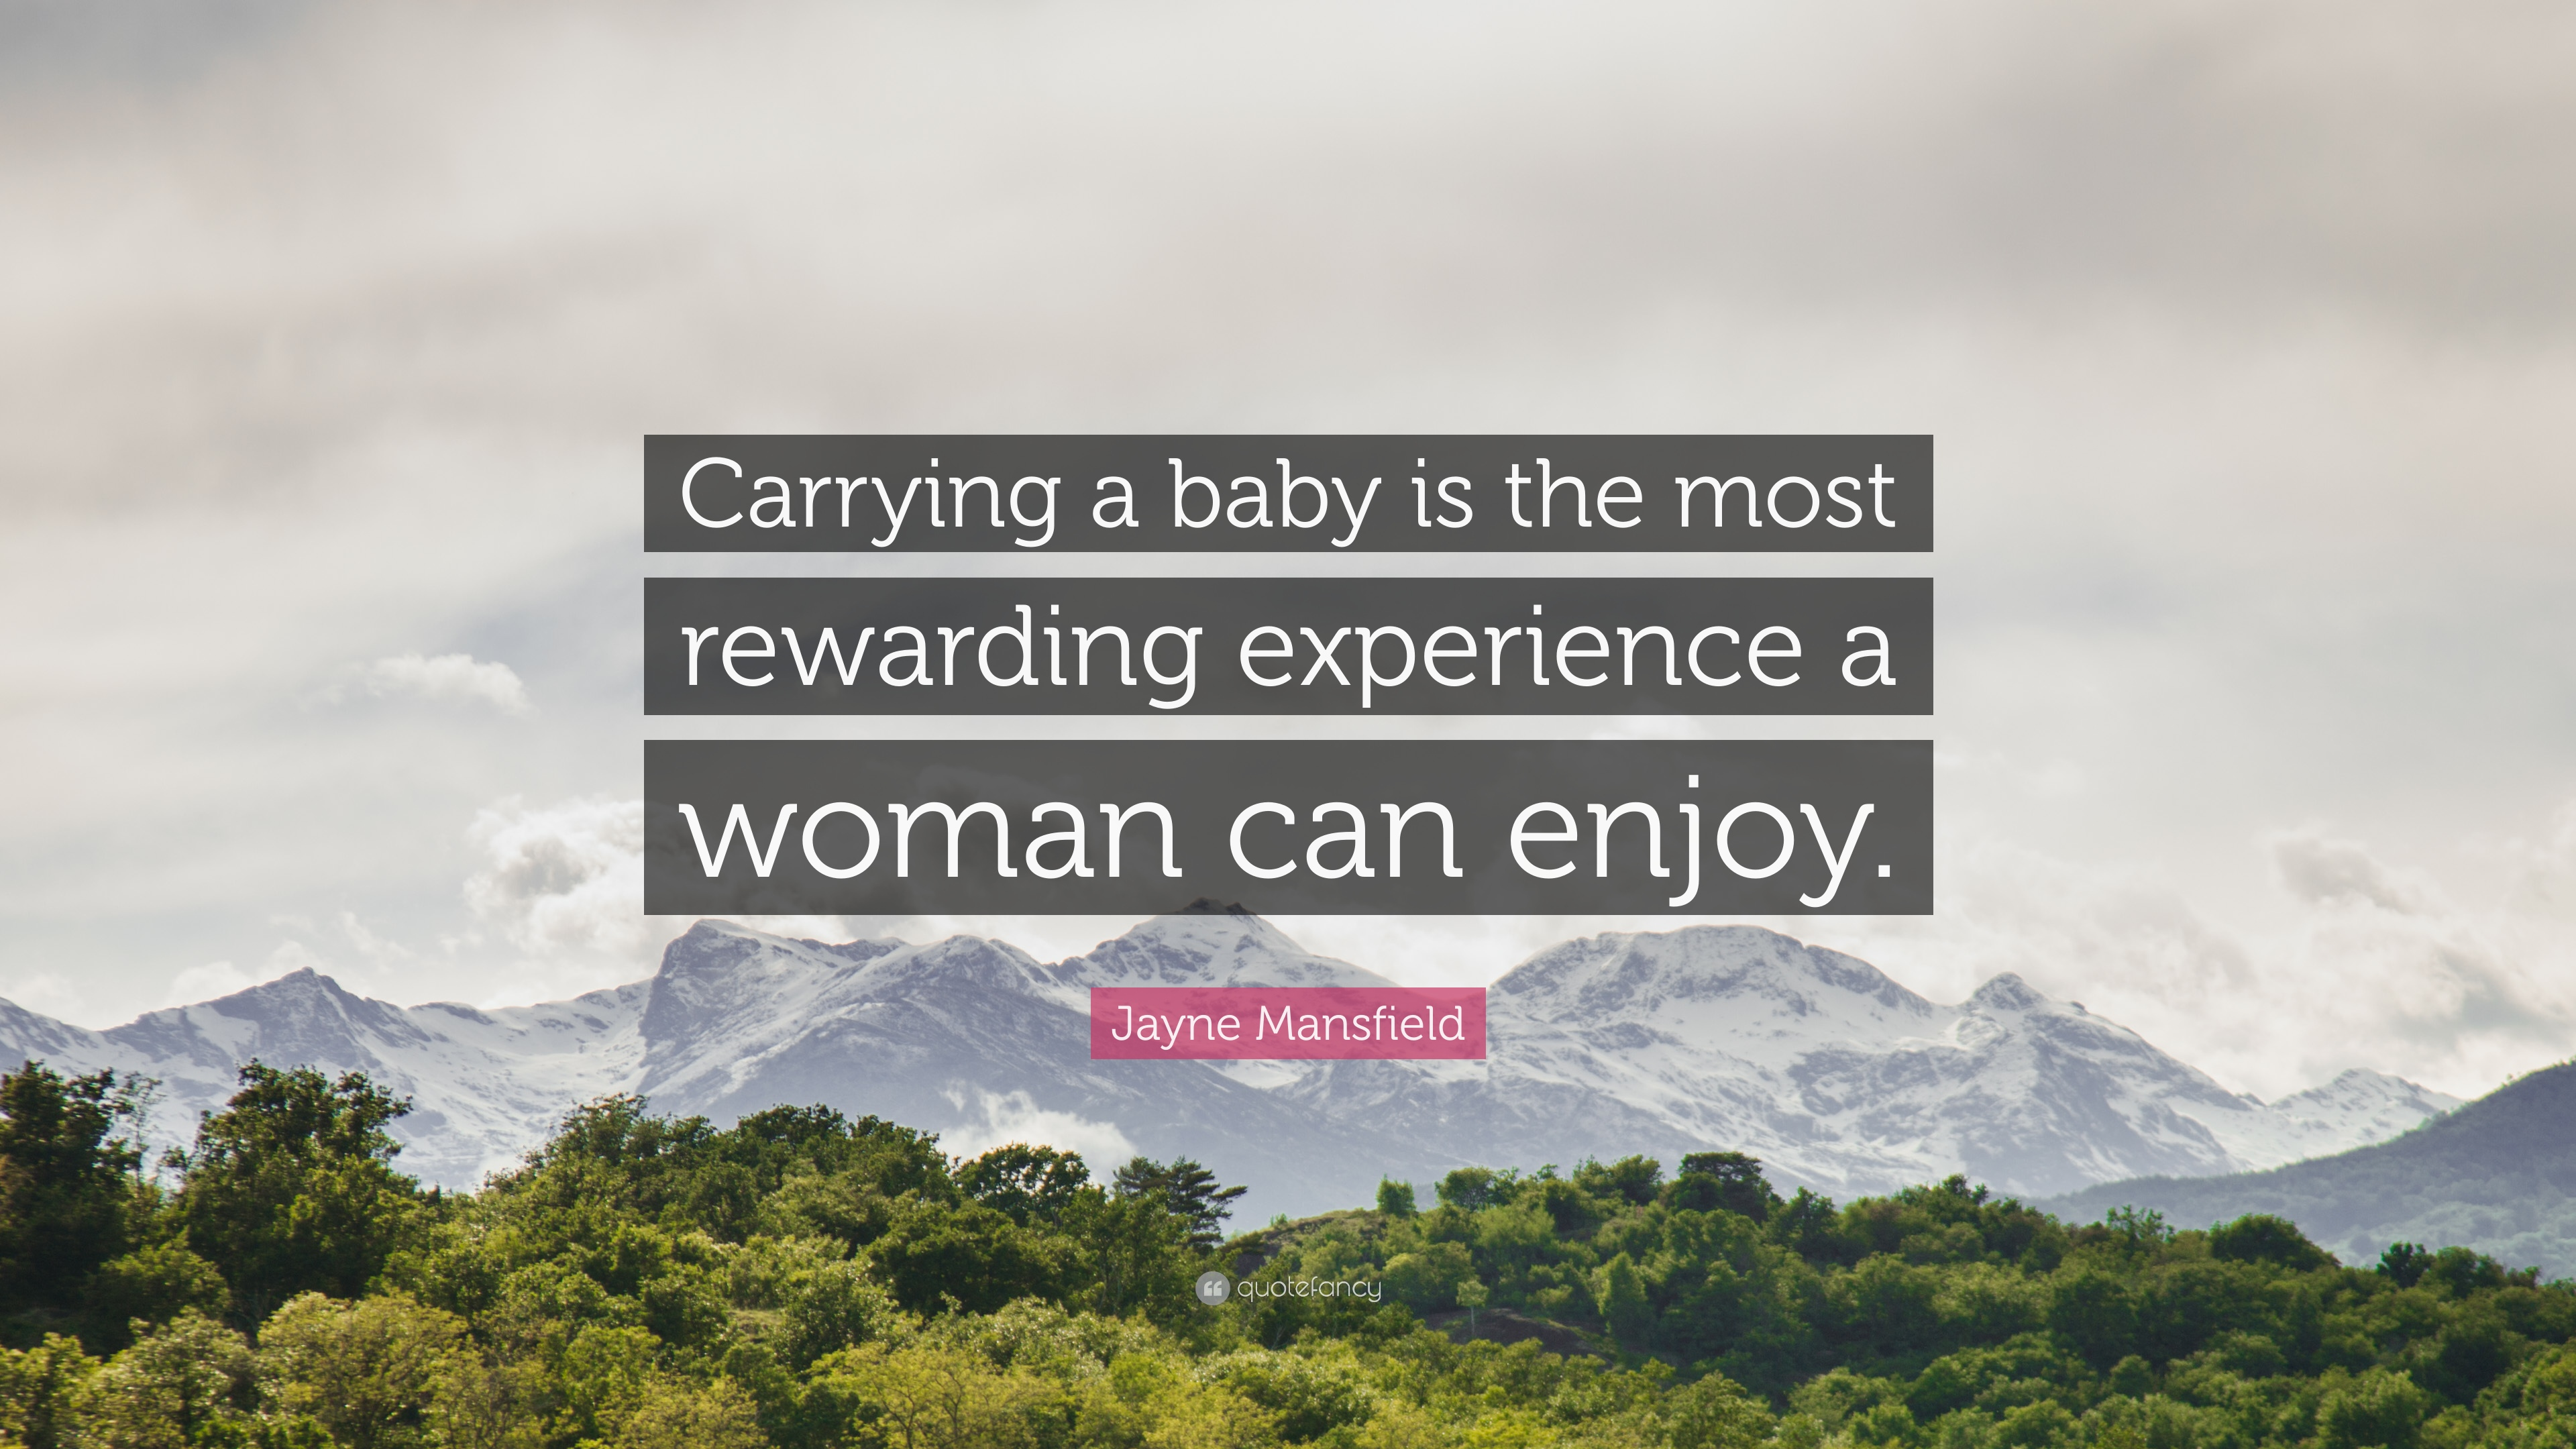 jayne mansfield quotes quotefancy jayne mansfield quote carrying a baby is the most rewarding experience a w can